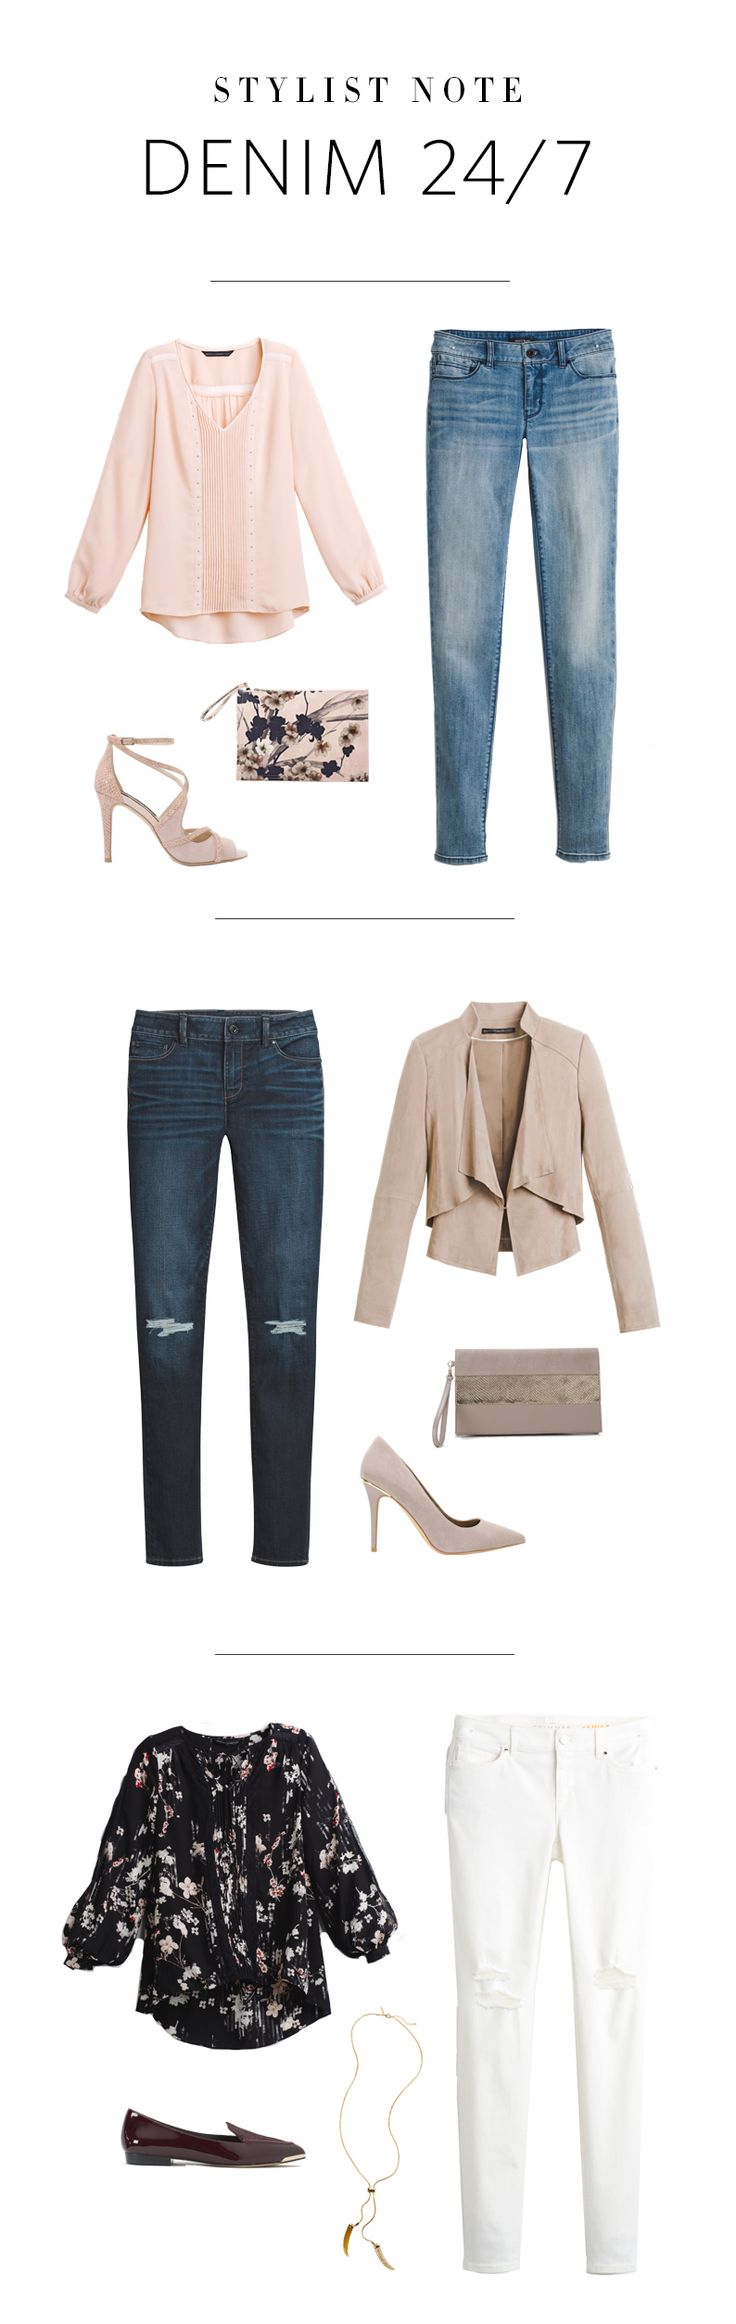 WHBM jeans have the style & fit you crave. Make them work for any day of the week. Date Night Pretty: Compliment the light wash denim with an overtly feminine blouse, strappy heels & floral-print clutch. Work Day Chic: A relaxed suede jacket, our sophisticated Olivia pumps & a neutral hued clutch will take your jeans for Casual Friday to the next level. Brunch Plans: A billowy blouse paired with a crisp pair of our white jeans &  flats make this the perfect outfit pre, during and post…